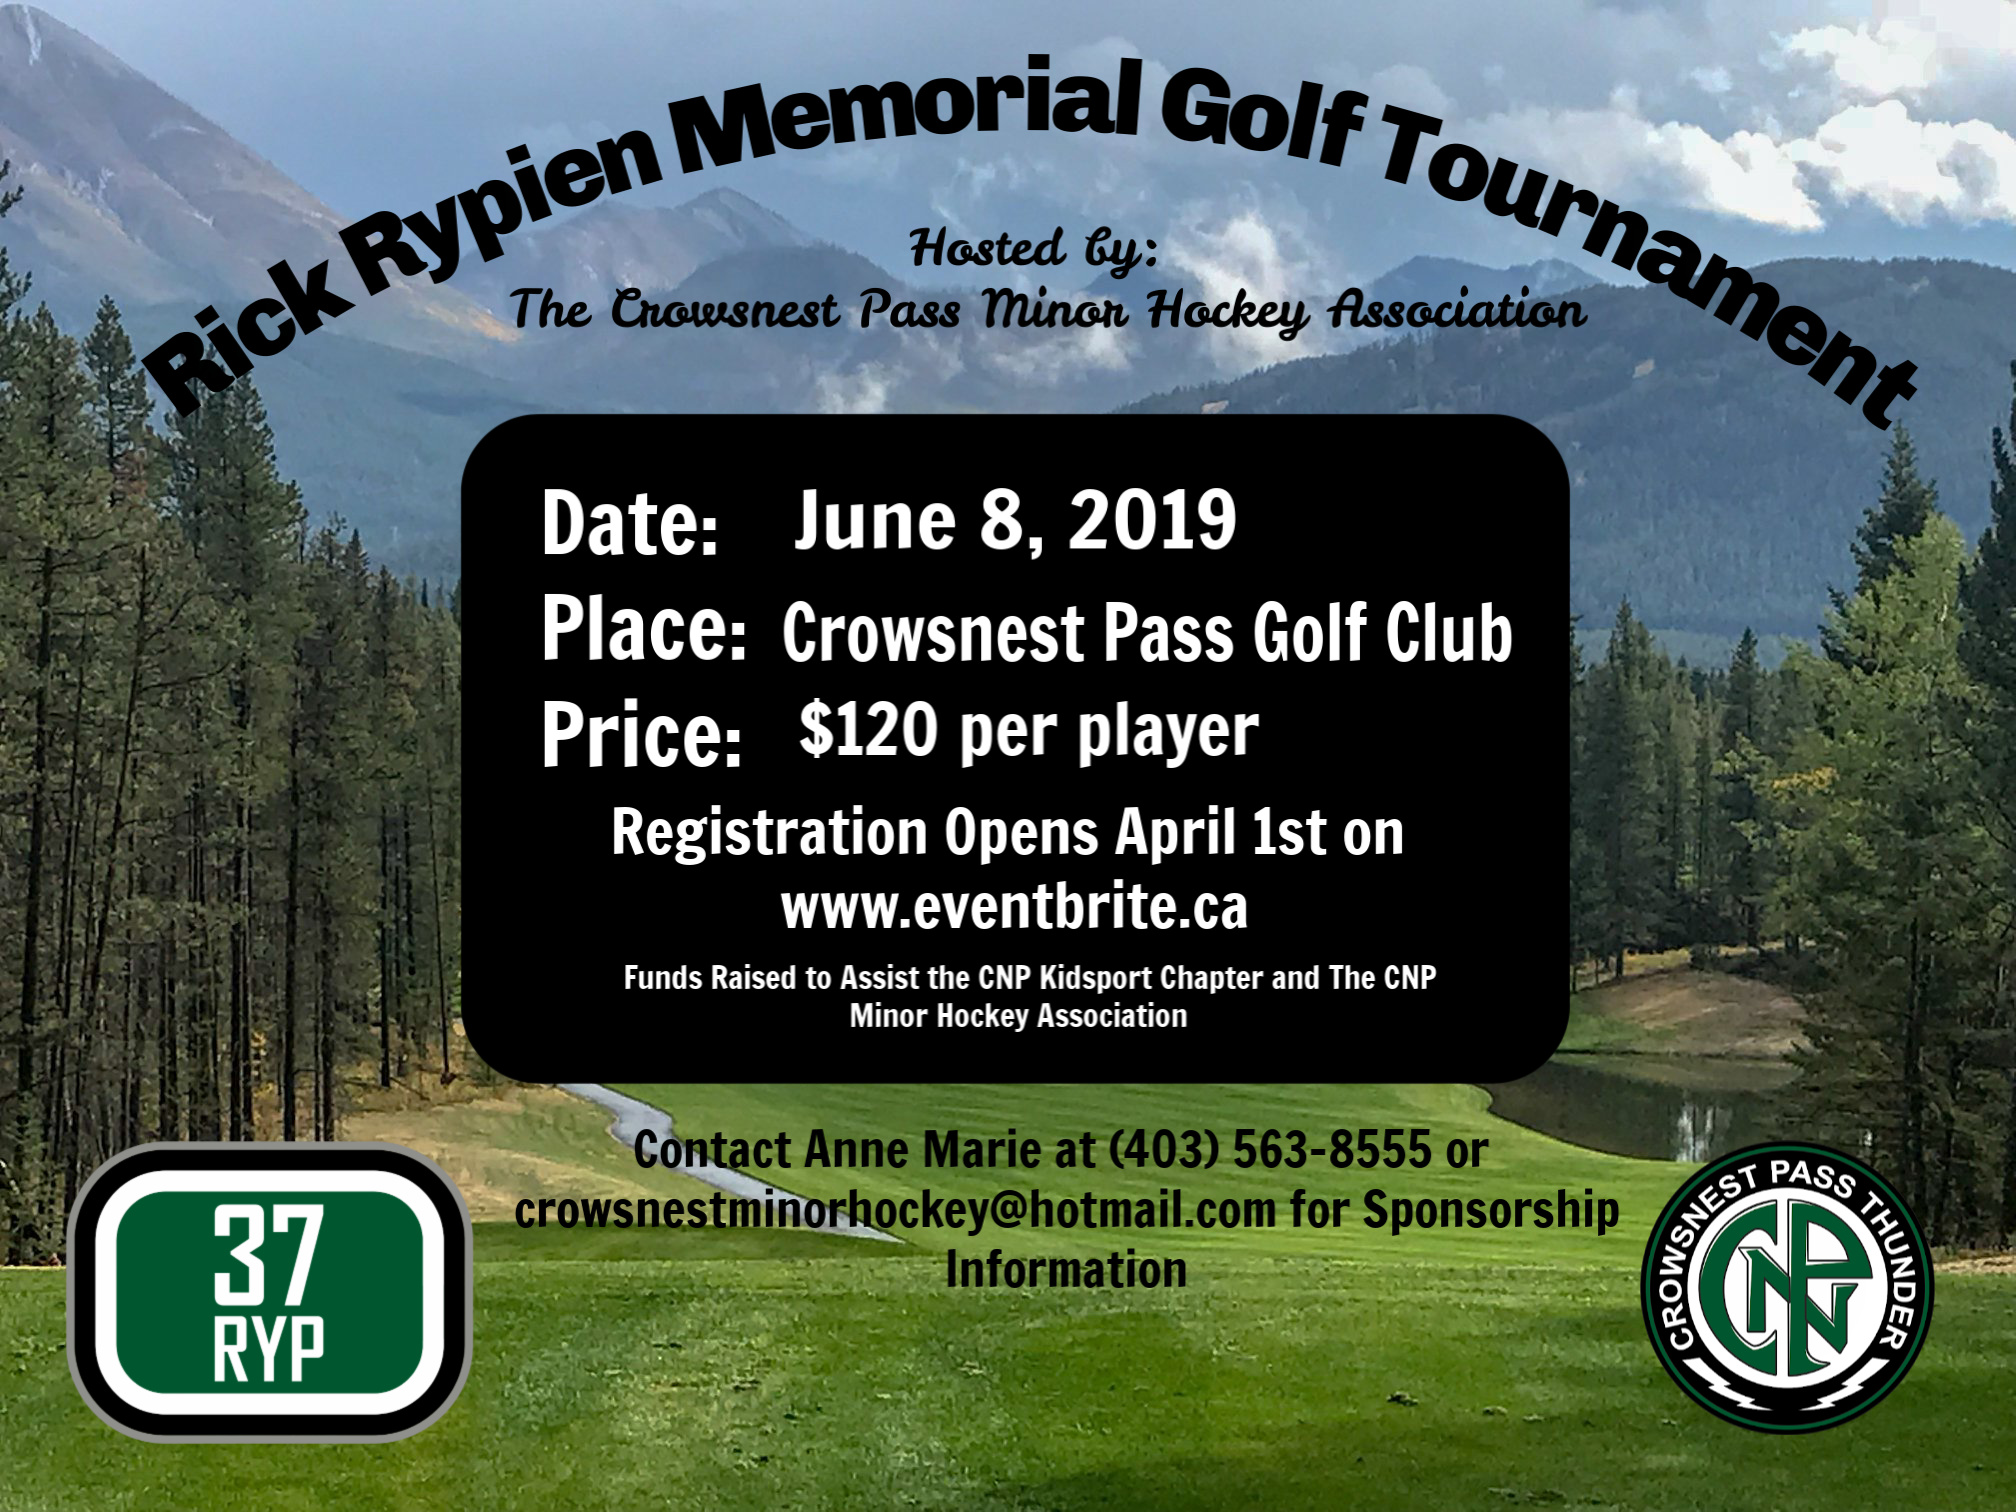 Rick Rypien Memorial Golf Tournament